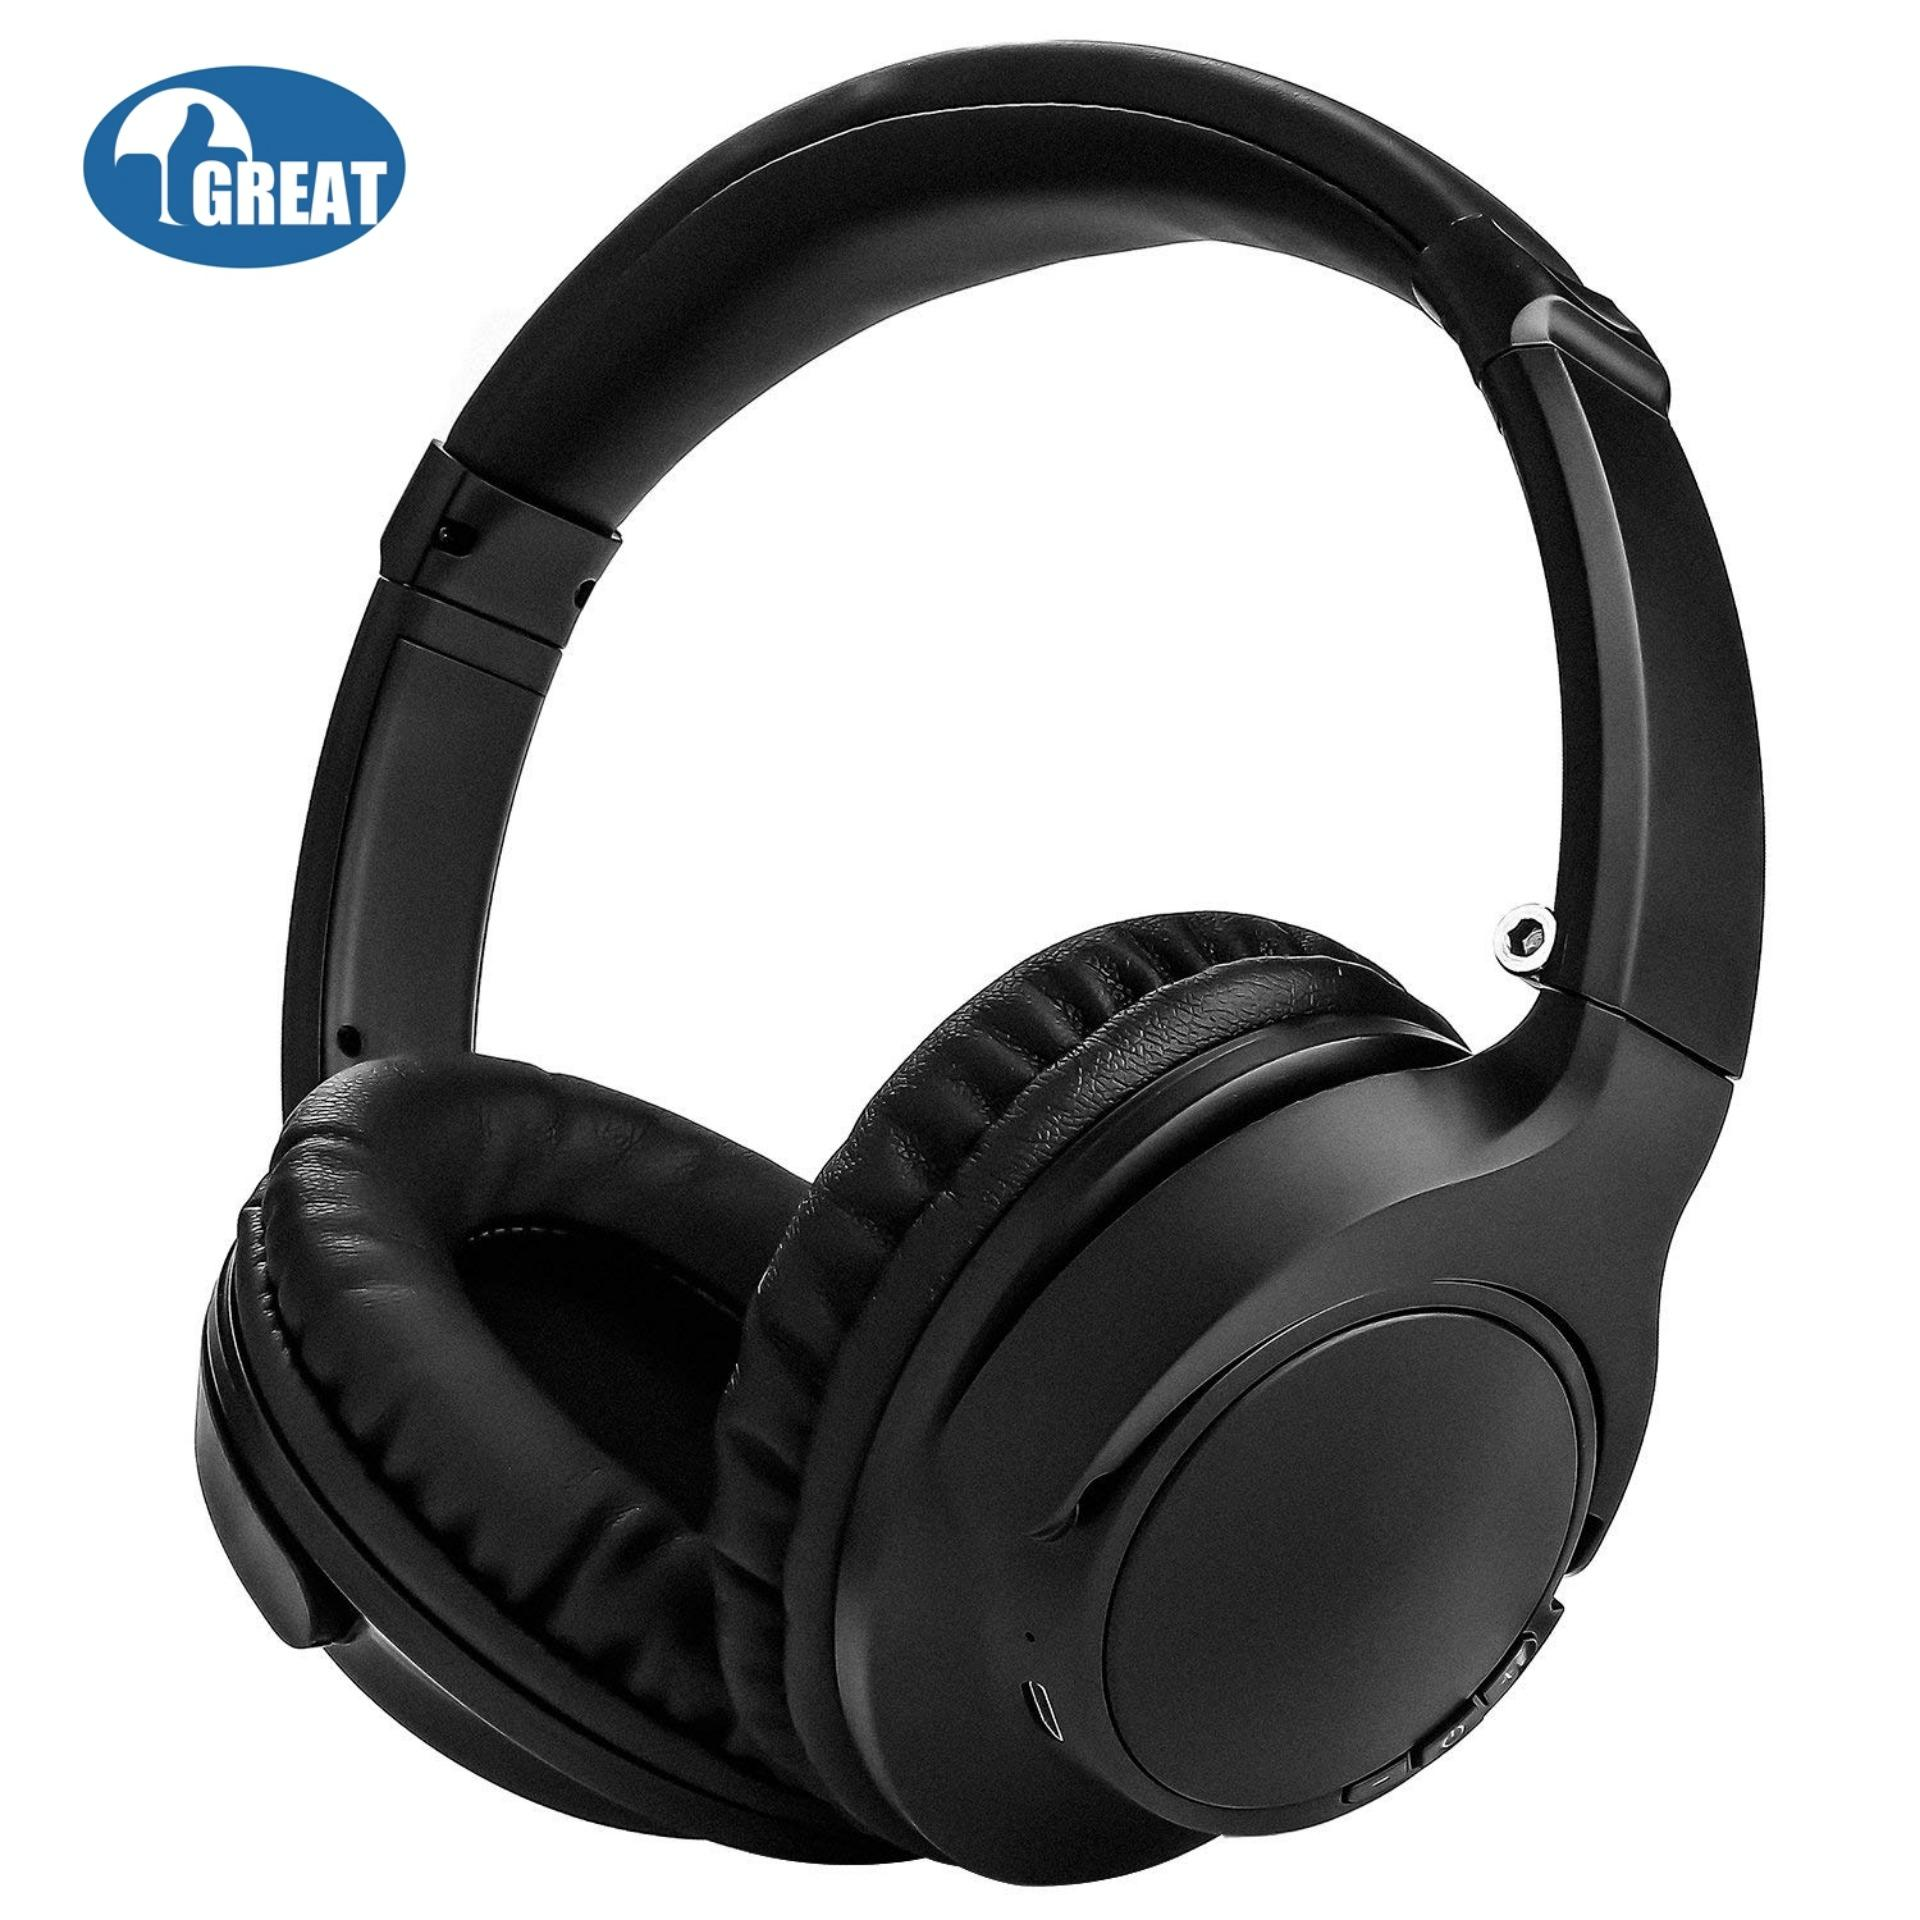 2a2ebba4404 Goodgreat Bluetooth Headphones Over Ear Wireless Stereo Foldable And Wired  Heets With. Over The Ear Headphones High Quality Sound Lazada Sg